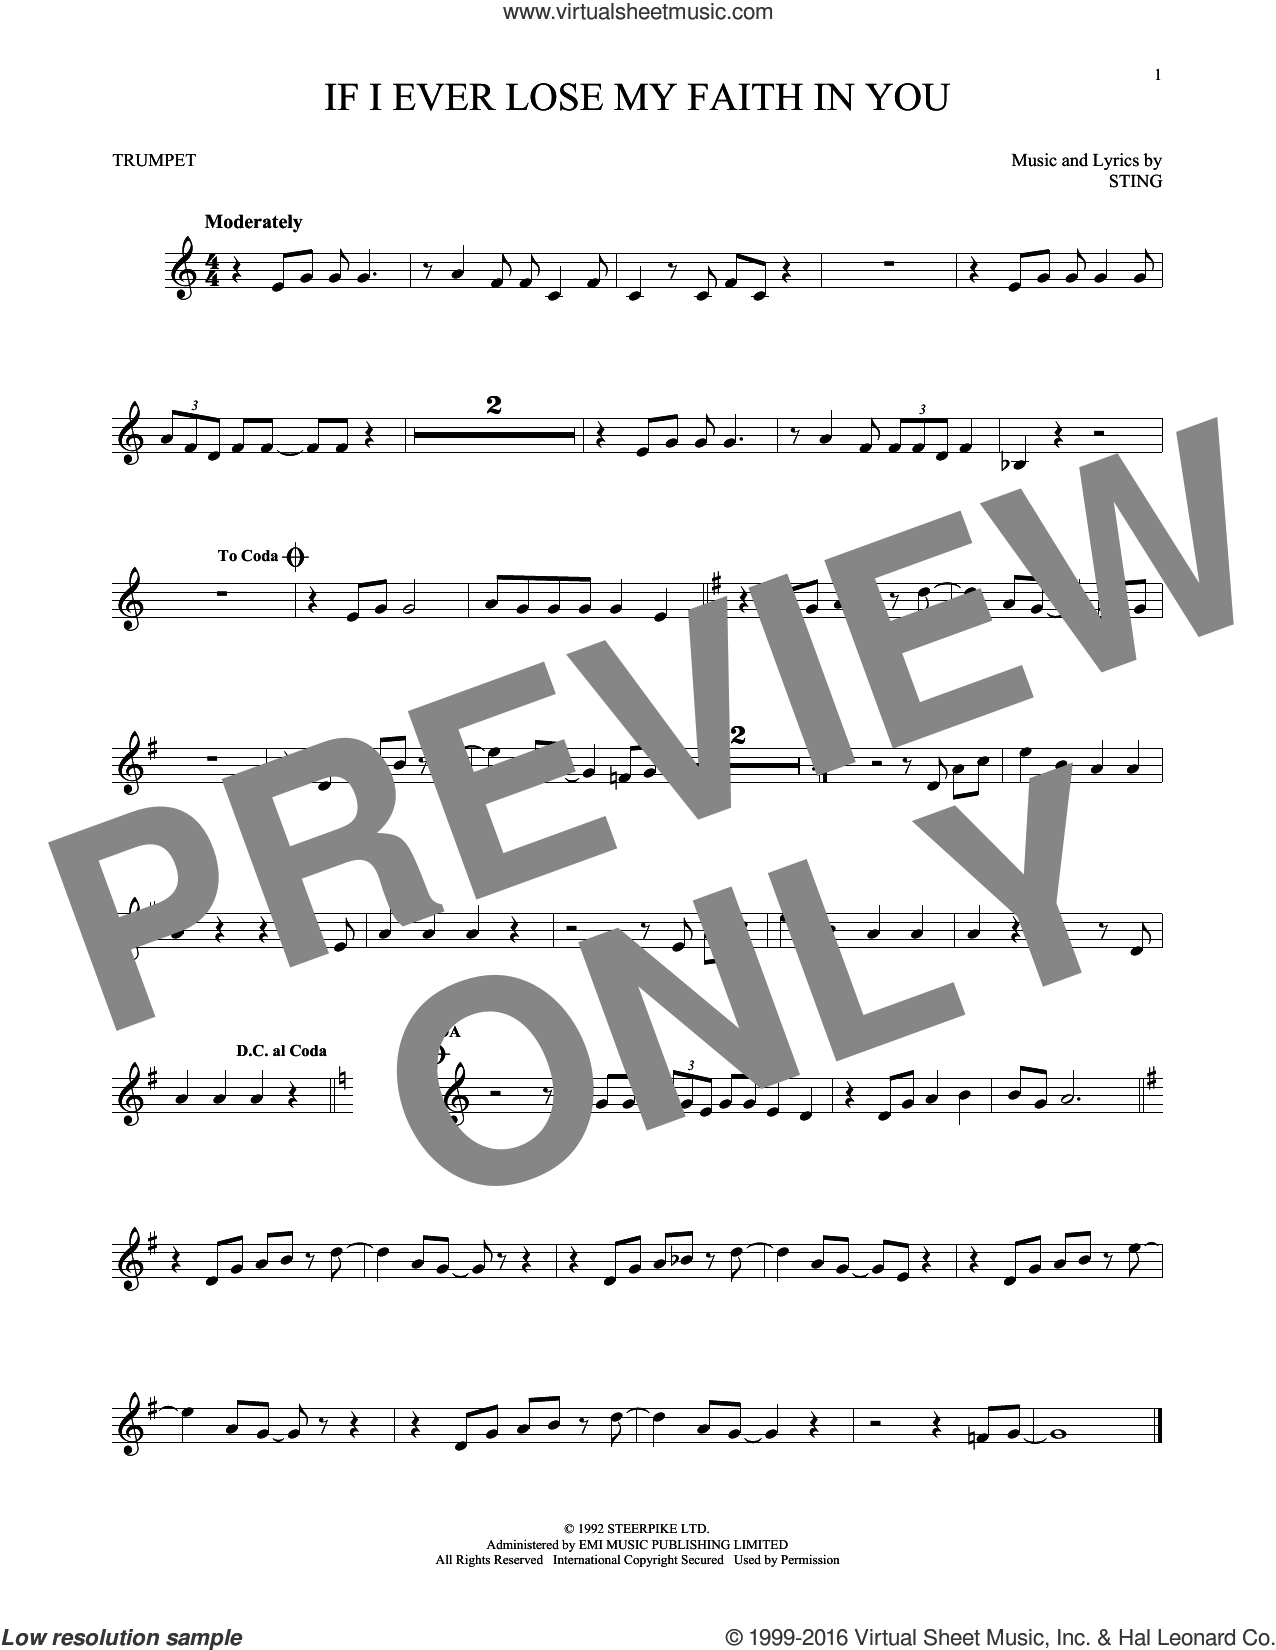 If I Ever Lose My Faith In You sheet music for trumpet solo by Sting, intermediate skill level